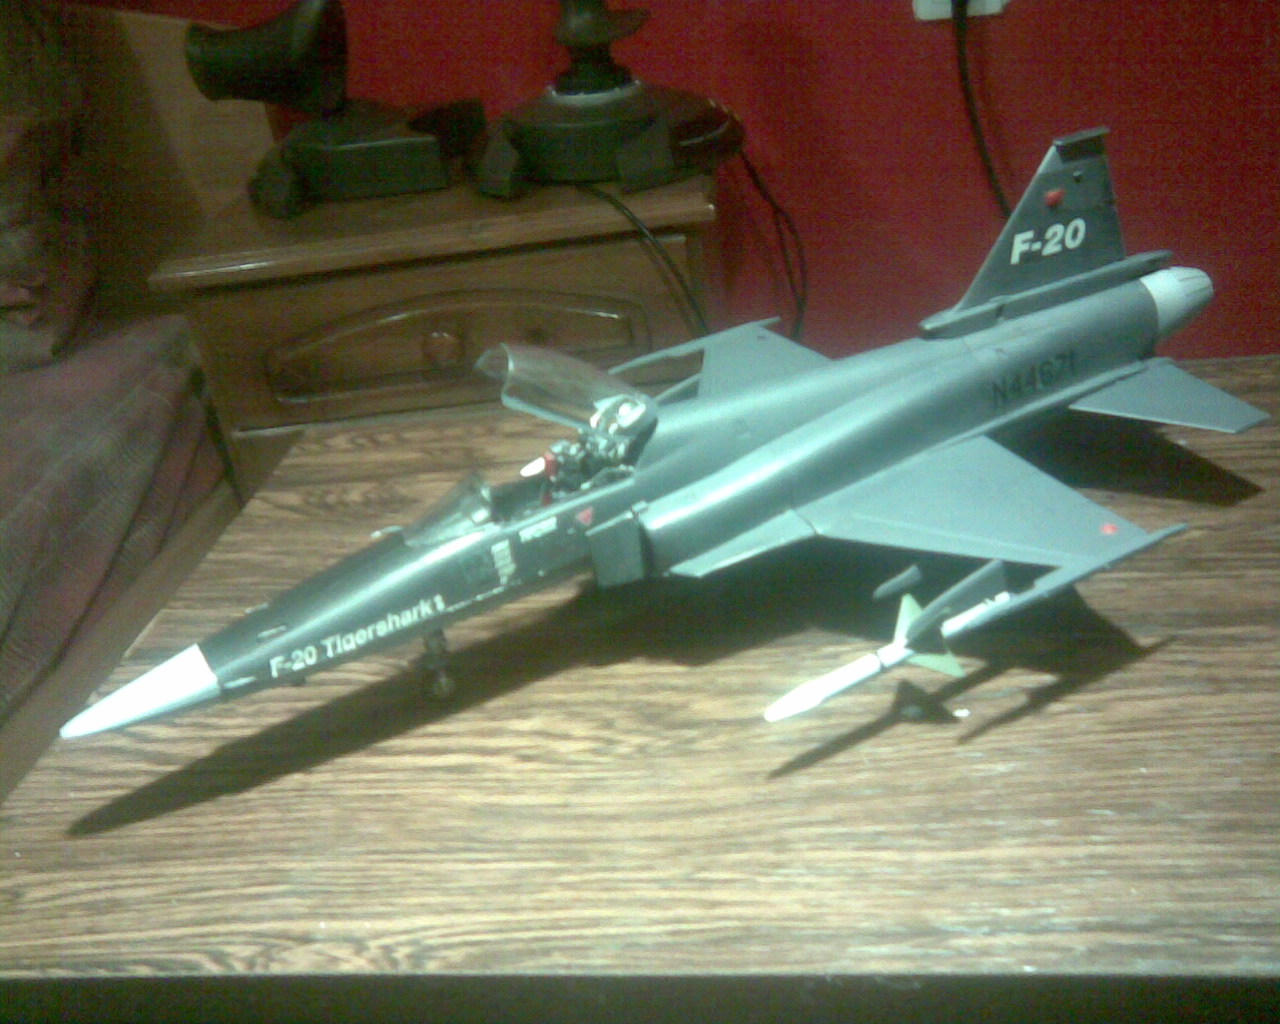 Monogram F-20 Tigershark 1:48